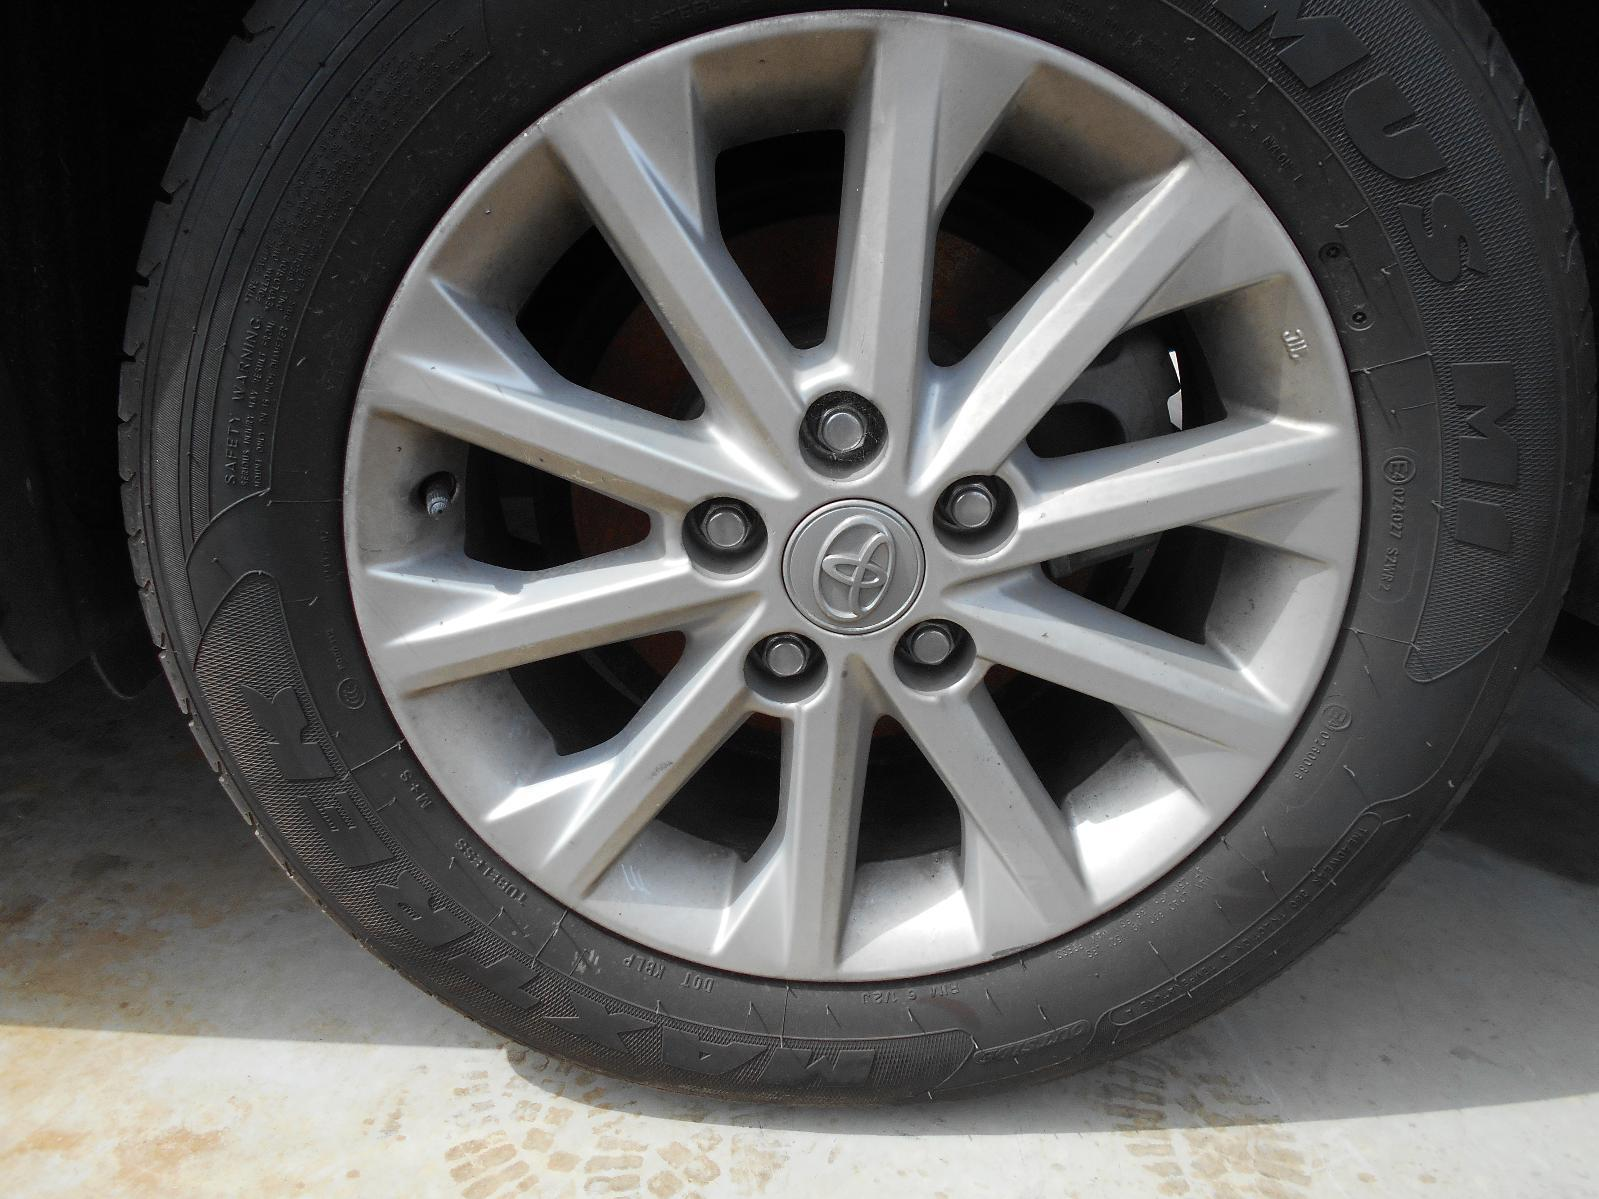 TOYOTA CAMRY, Wheel Mag, FACTORY, 16X6.5IN, ACV50, ALTISE/HYBRID H, 12/11-05/15